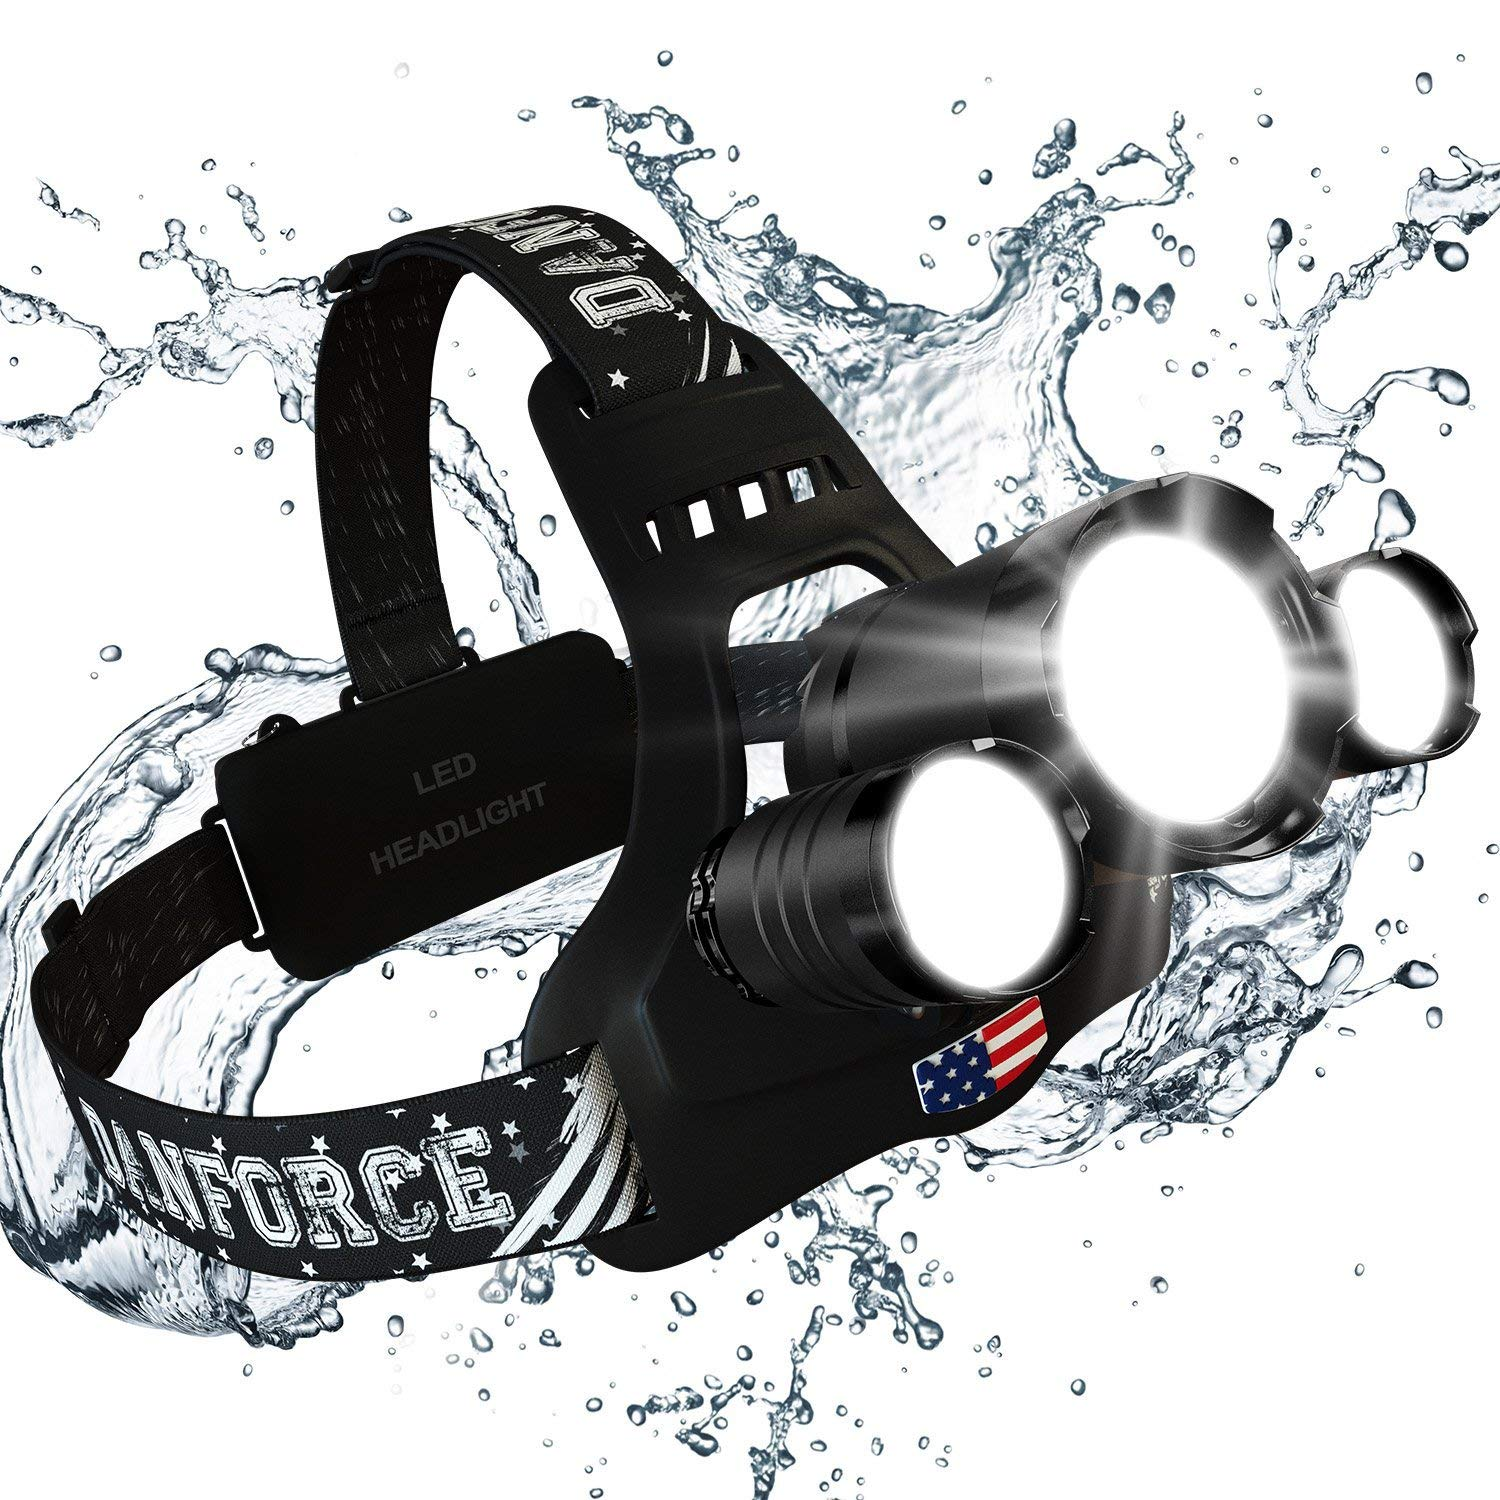 Newest and Best Version Headlamp, Brightest Head Lamp Provide 8000 Lumens with 3 Original Cree Led. 2 Powerful Rechargeable Batteries, Headlamps for Outdoor & Indoor,Headlamps